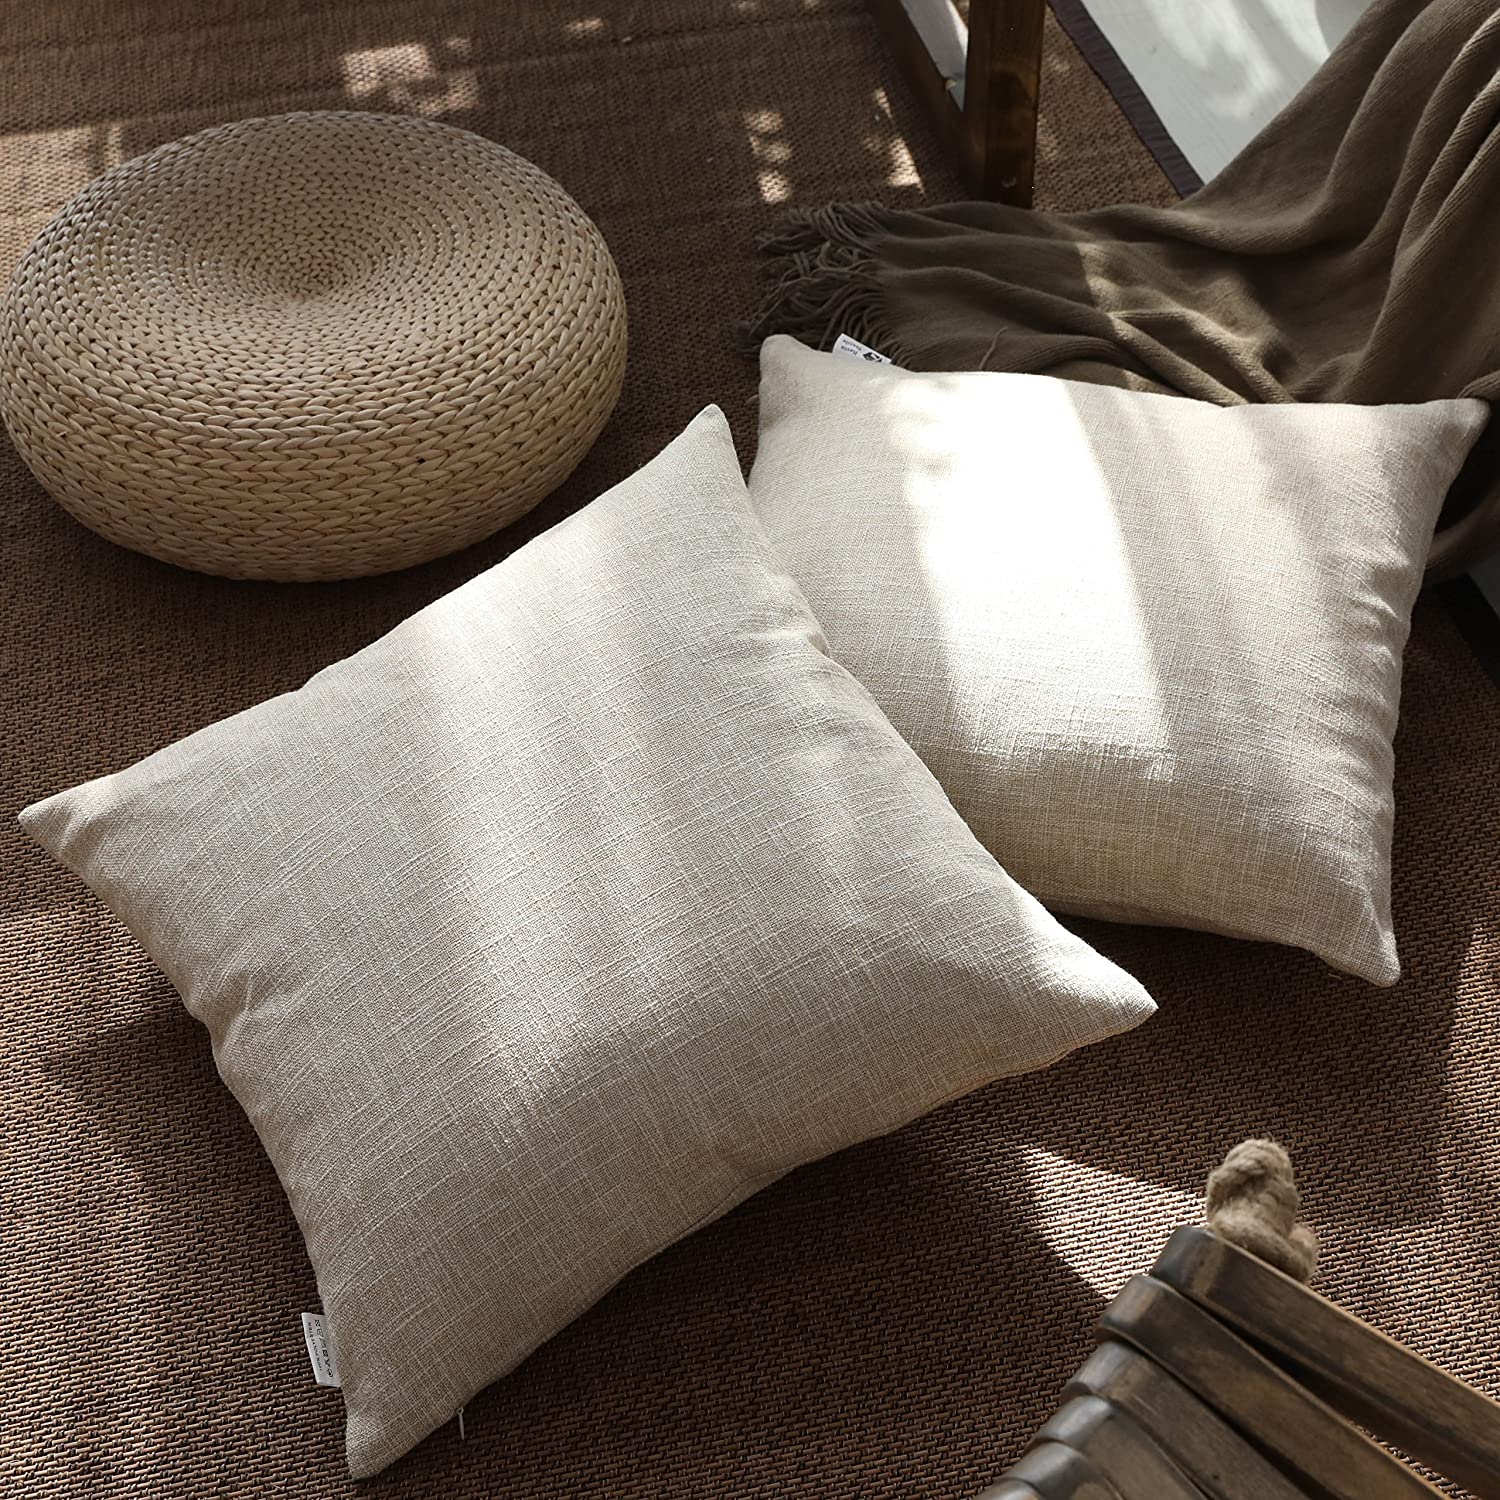 genertion new pillow retail zone generation linen hrbor pillows harbor